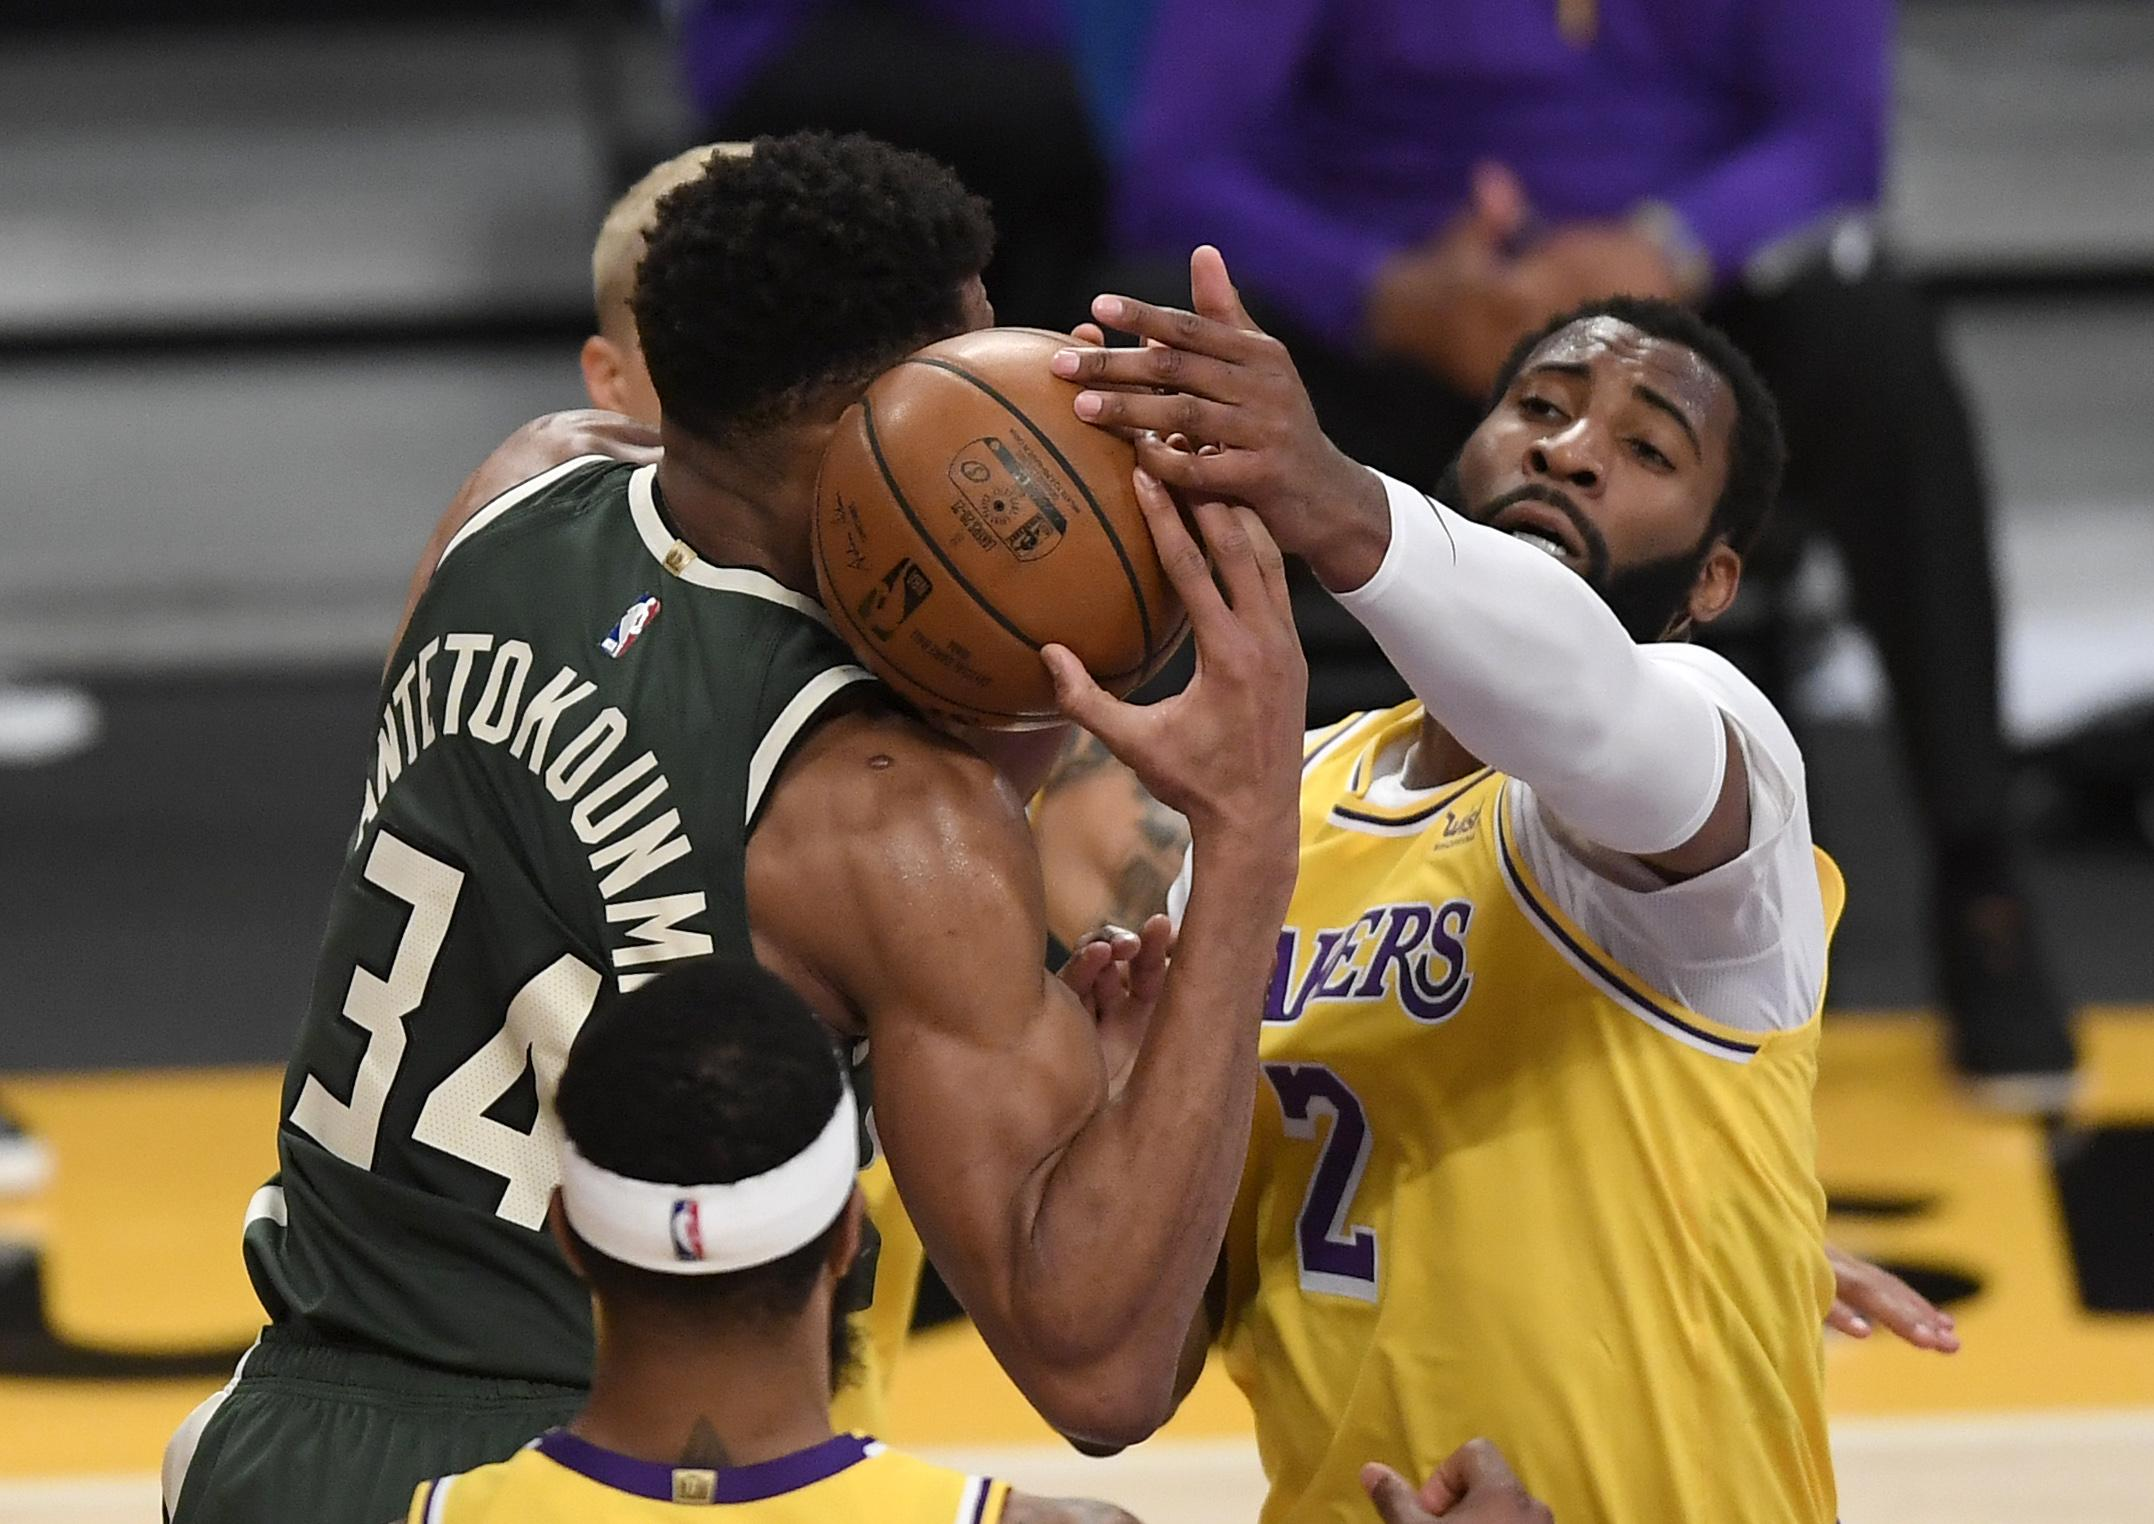 Andre Drummond #2, making his debut with the Los Angeles Lakers, and Giannis Antetokounmpo #34 of the Milwaukee Bucks Andre Drummond #2, making his debut with the Los Angeles Lakers, and Giannis Antetokounmpo #34 of the Milwaukee Bucks